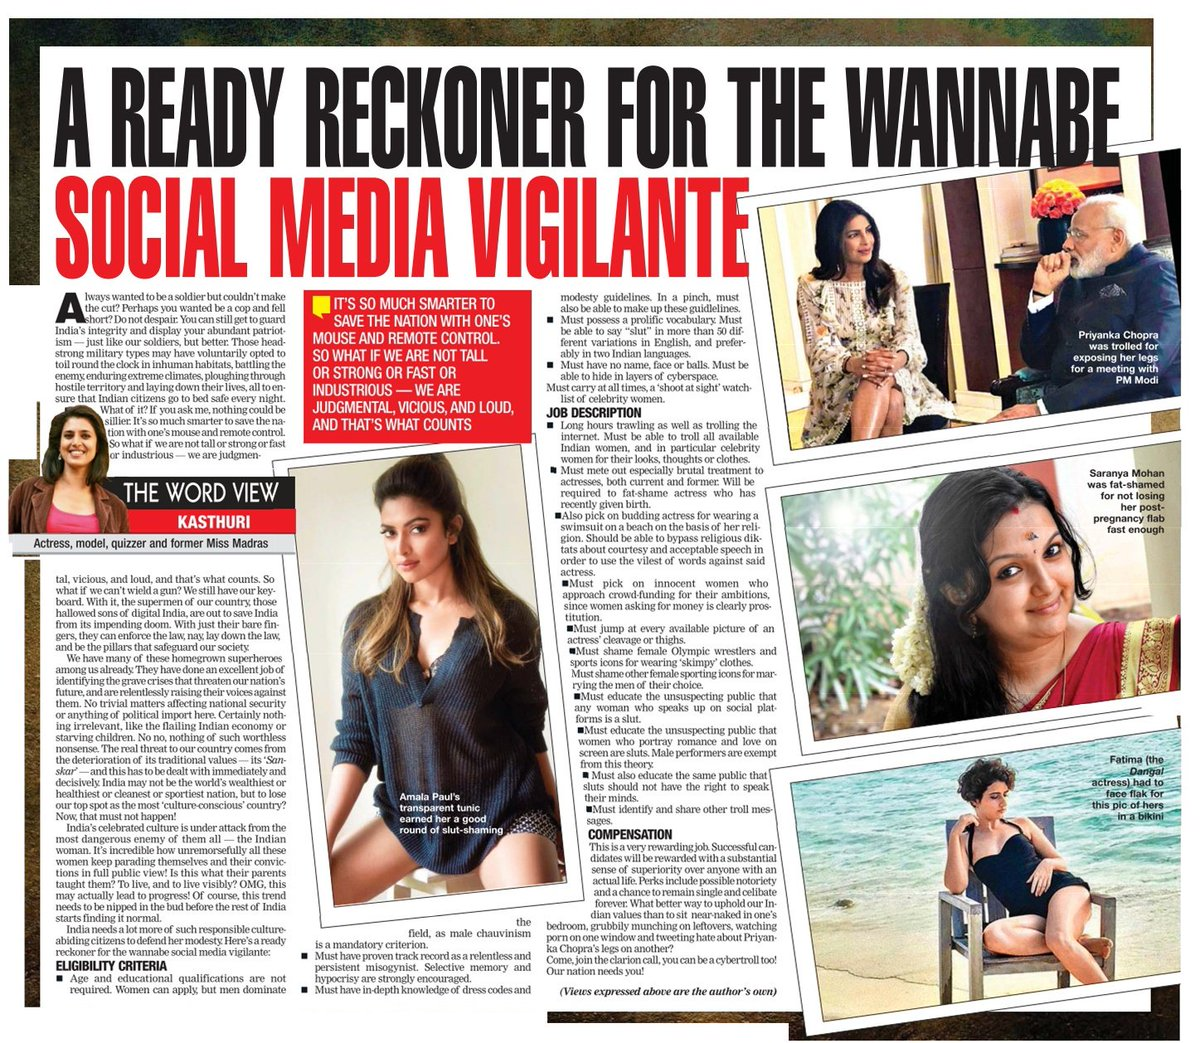 Article by @KasthuriShankar on women subjected to slut-shaming, being victims of male chauvinism, misogyny &amp; moral policing in today&#39;s #TOI <br>http://pic.twitter.com/4J5RSG0VW0